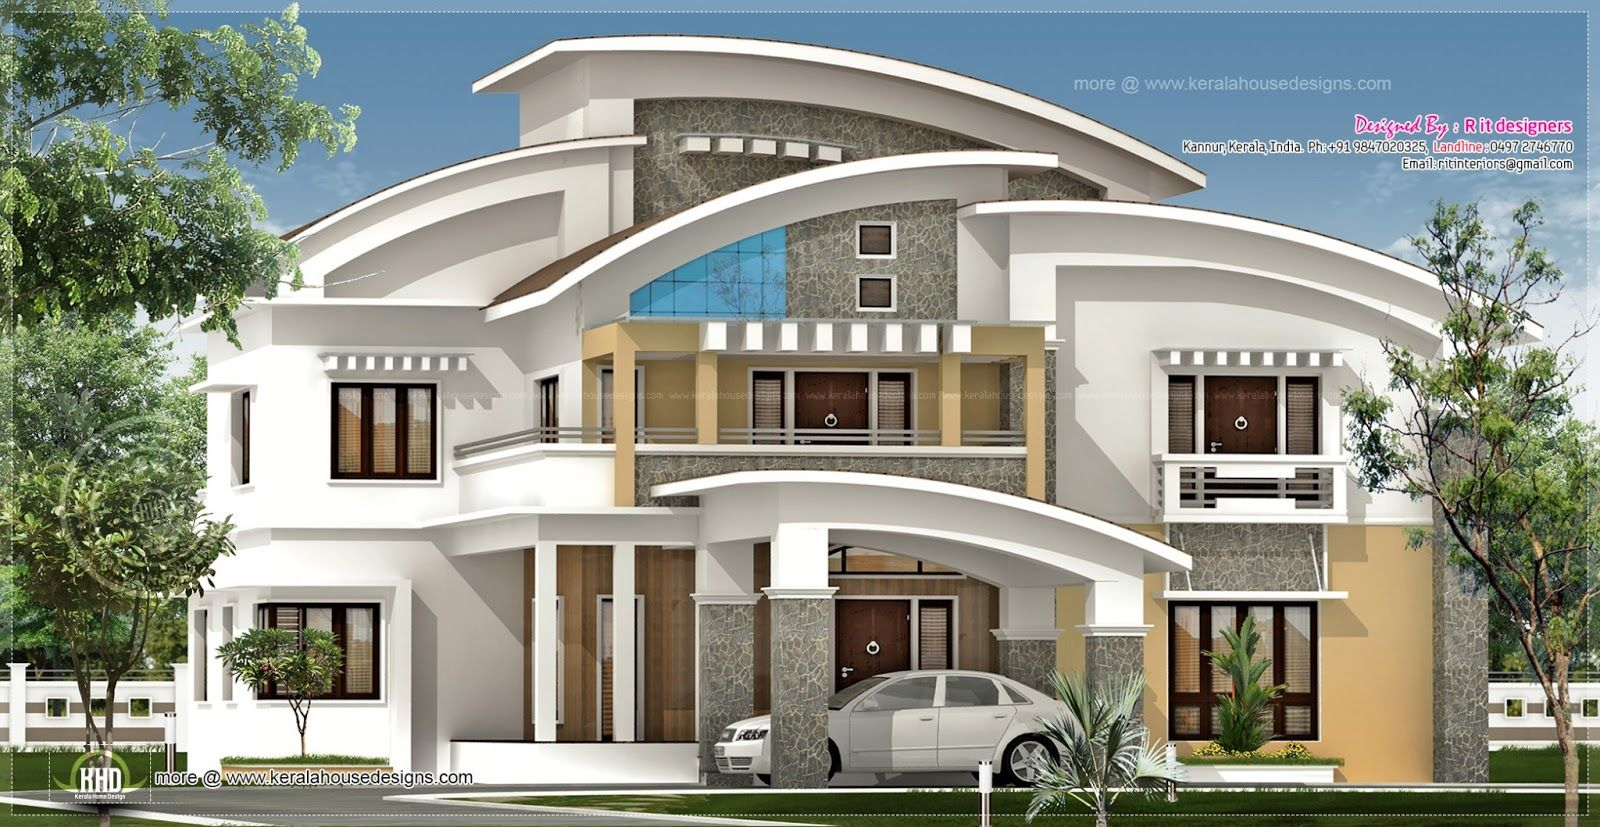 Awesome luxury homes plans 8 french country luxury home for Building design outside